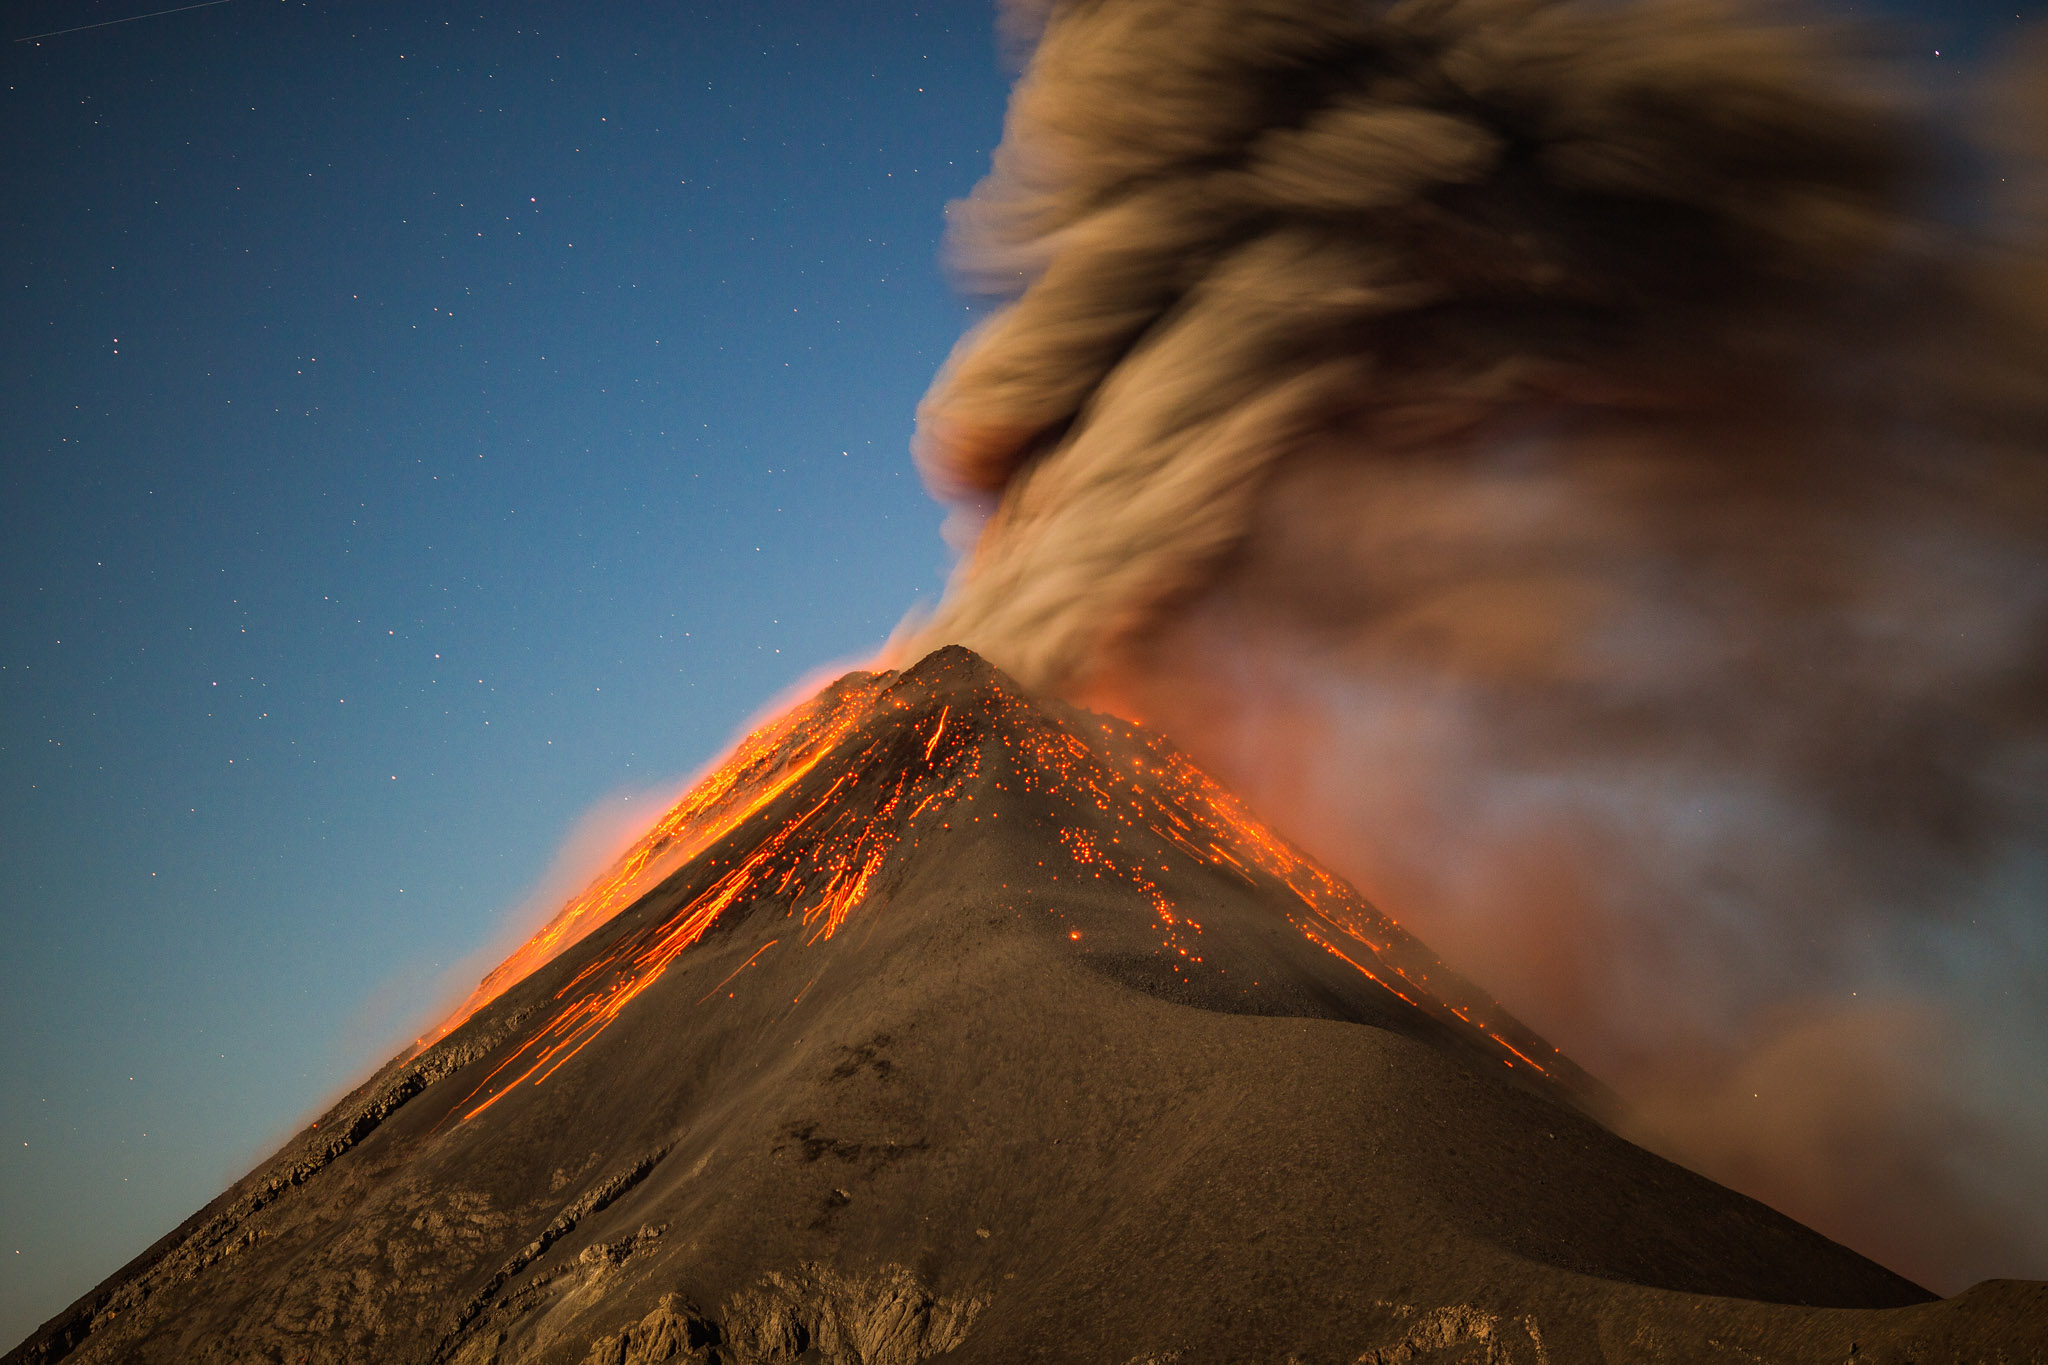 active-volcan-fuego-eruption-acatenango-guatemala-hike-tour-adventure-vanlife.jpg